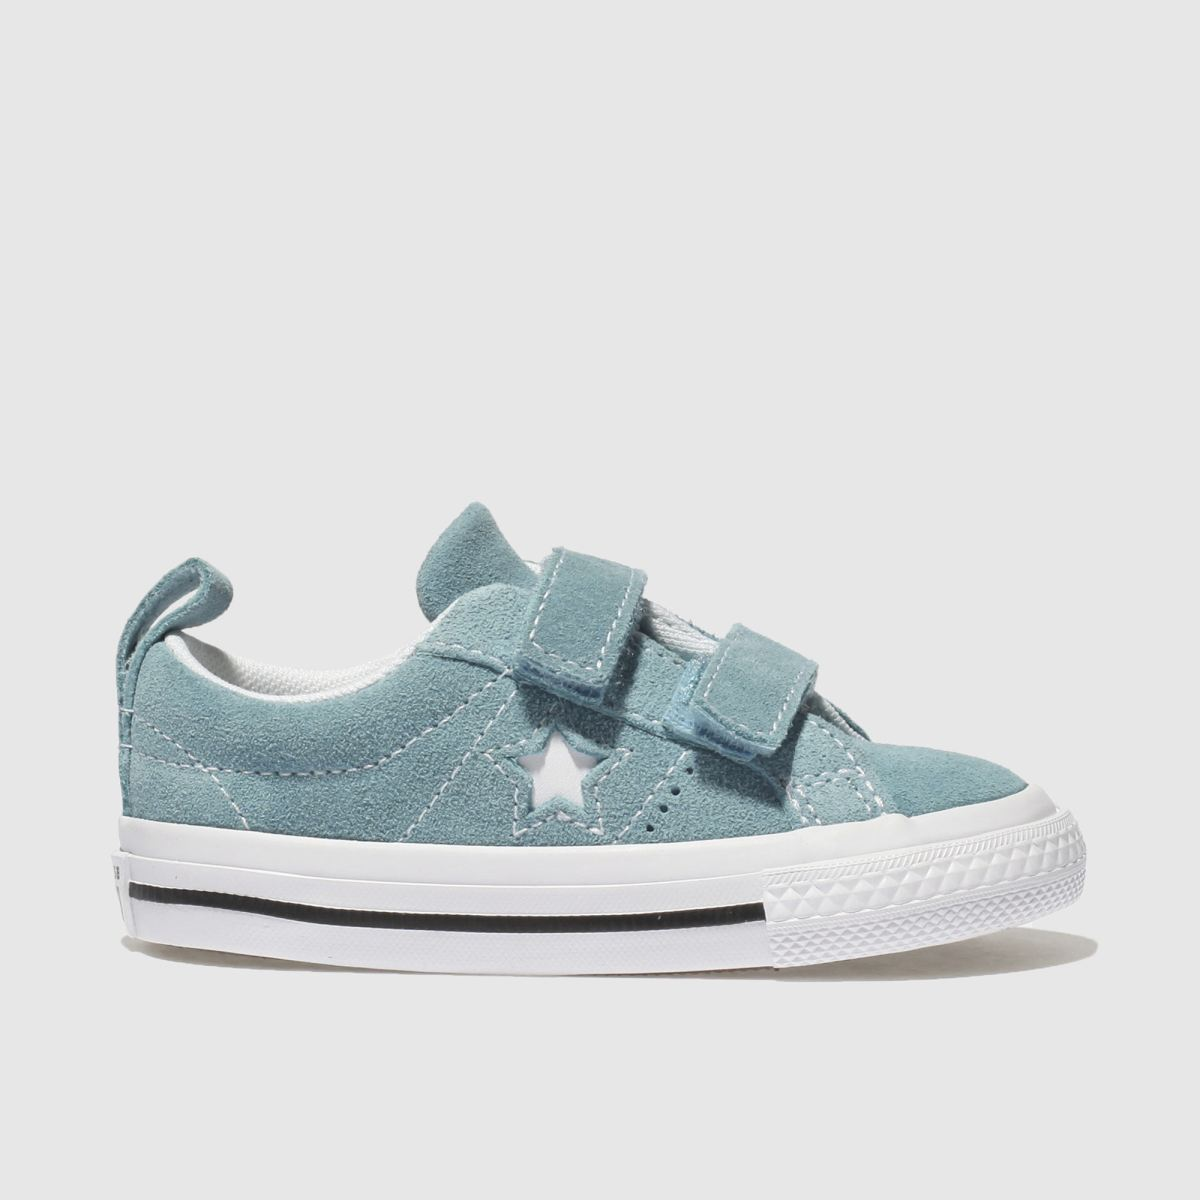 Converse Blue One Star Vintage Suede Unisex Toddler Toddler